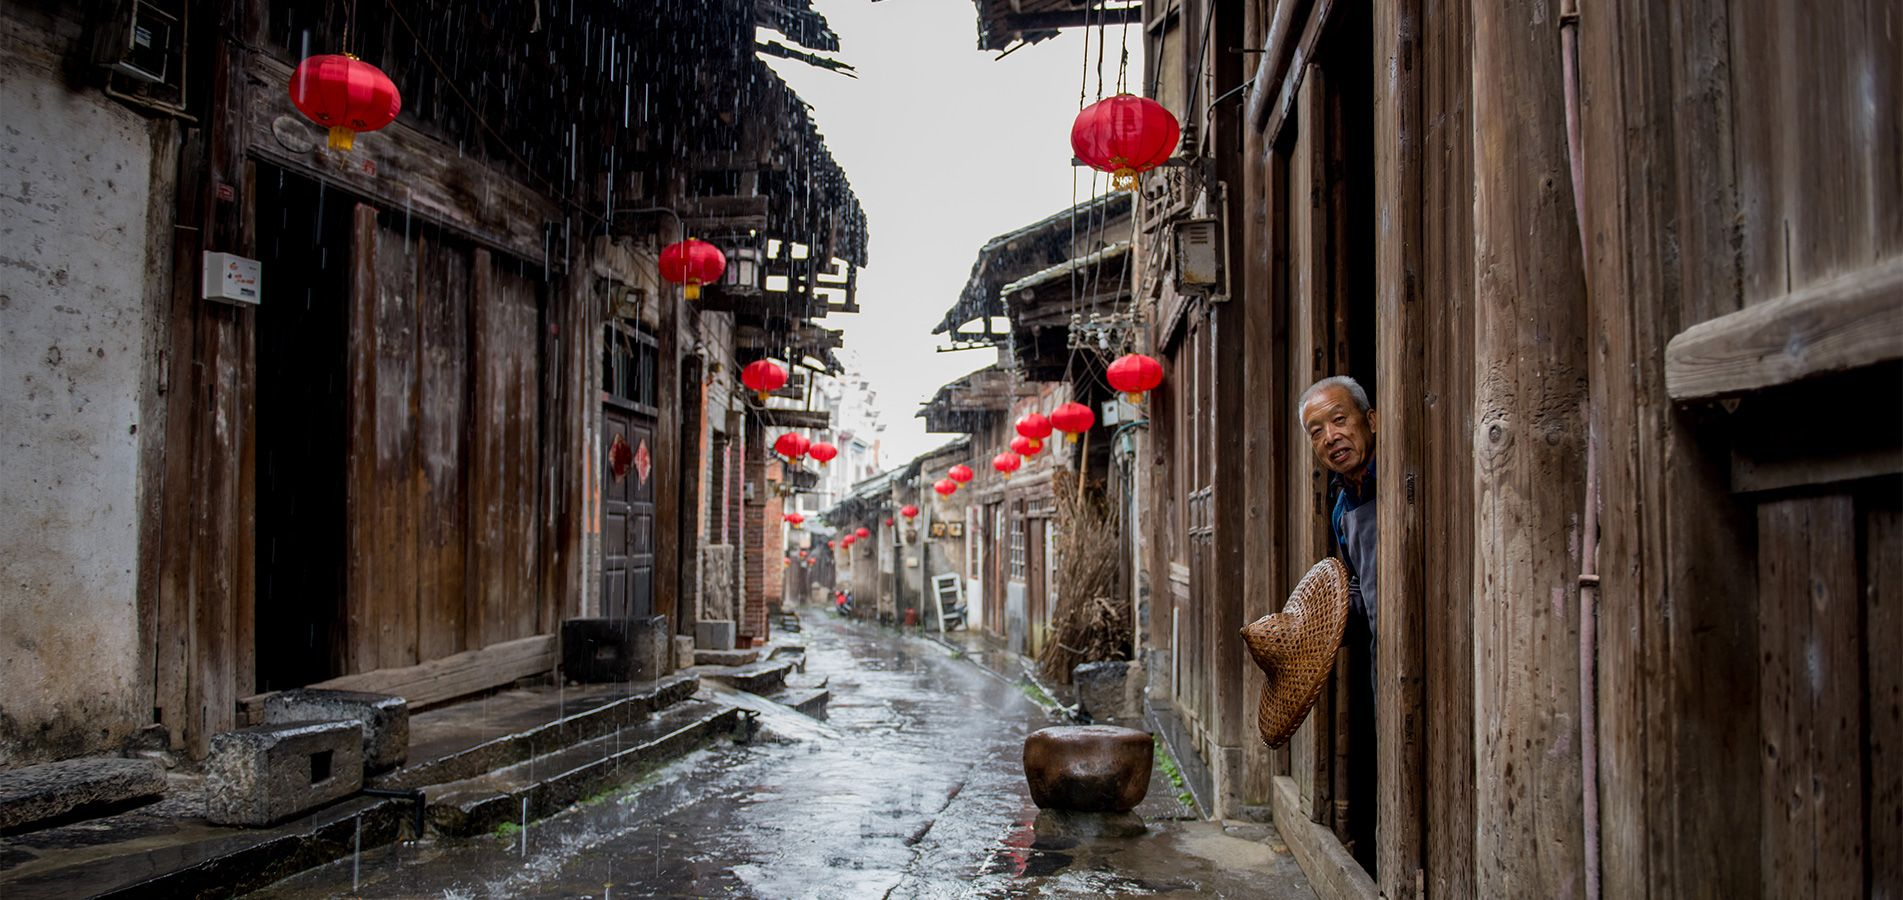 daxu ancient towns in china